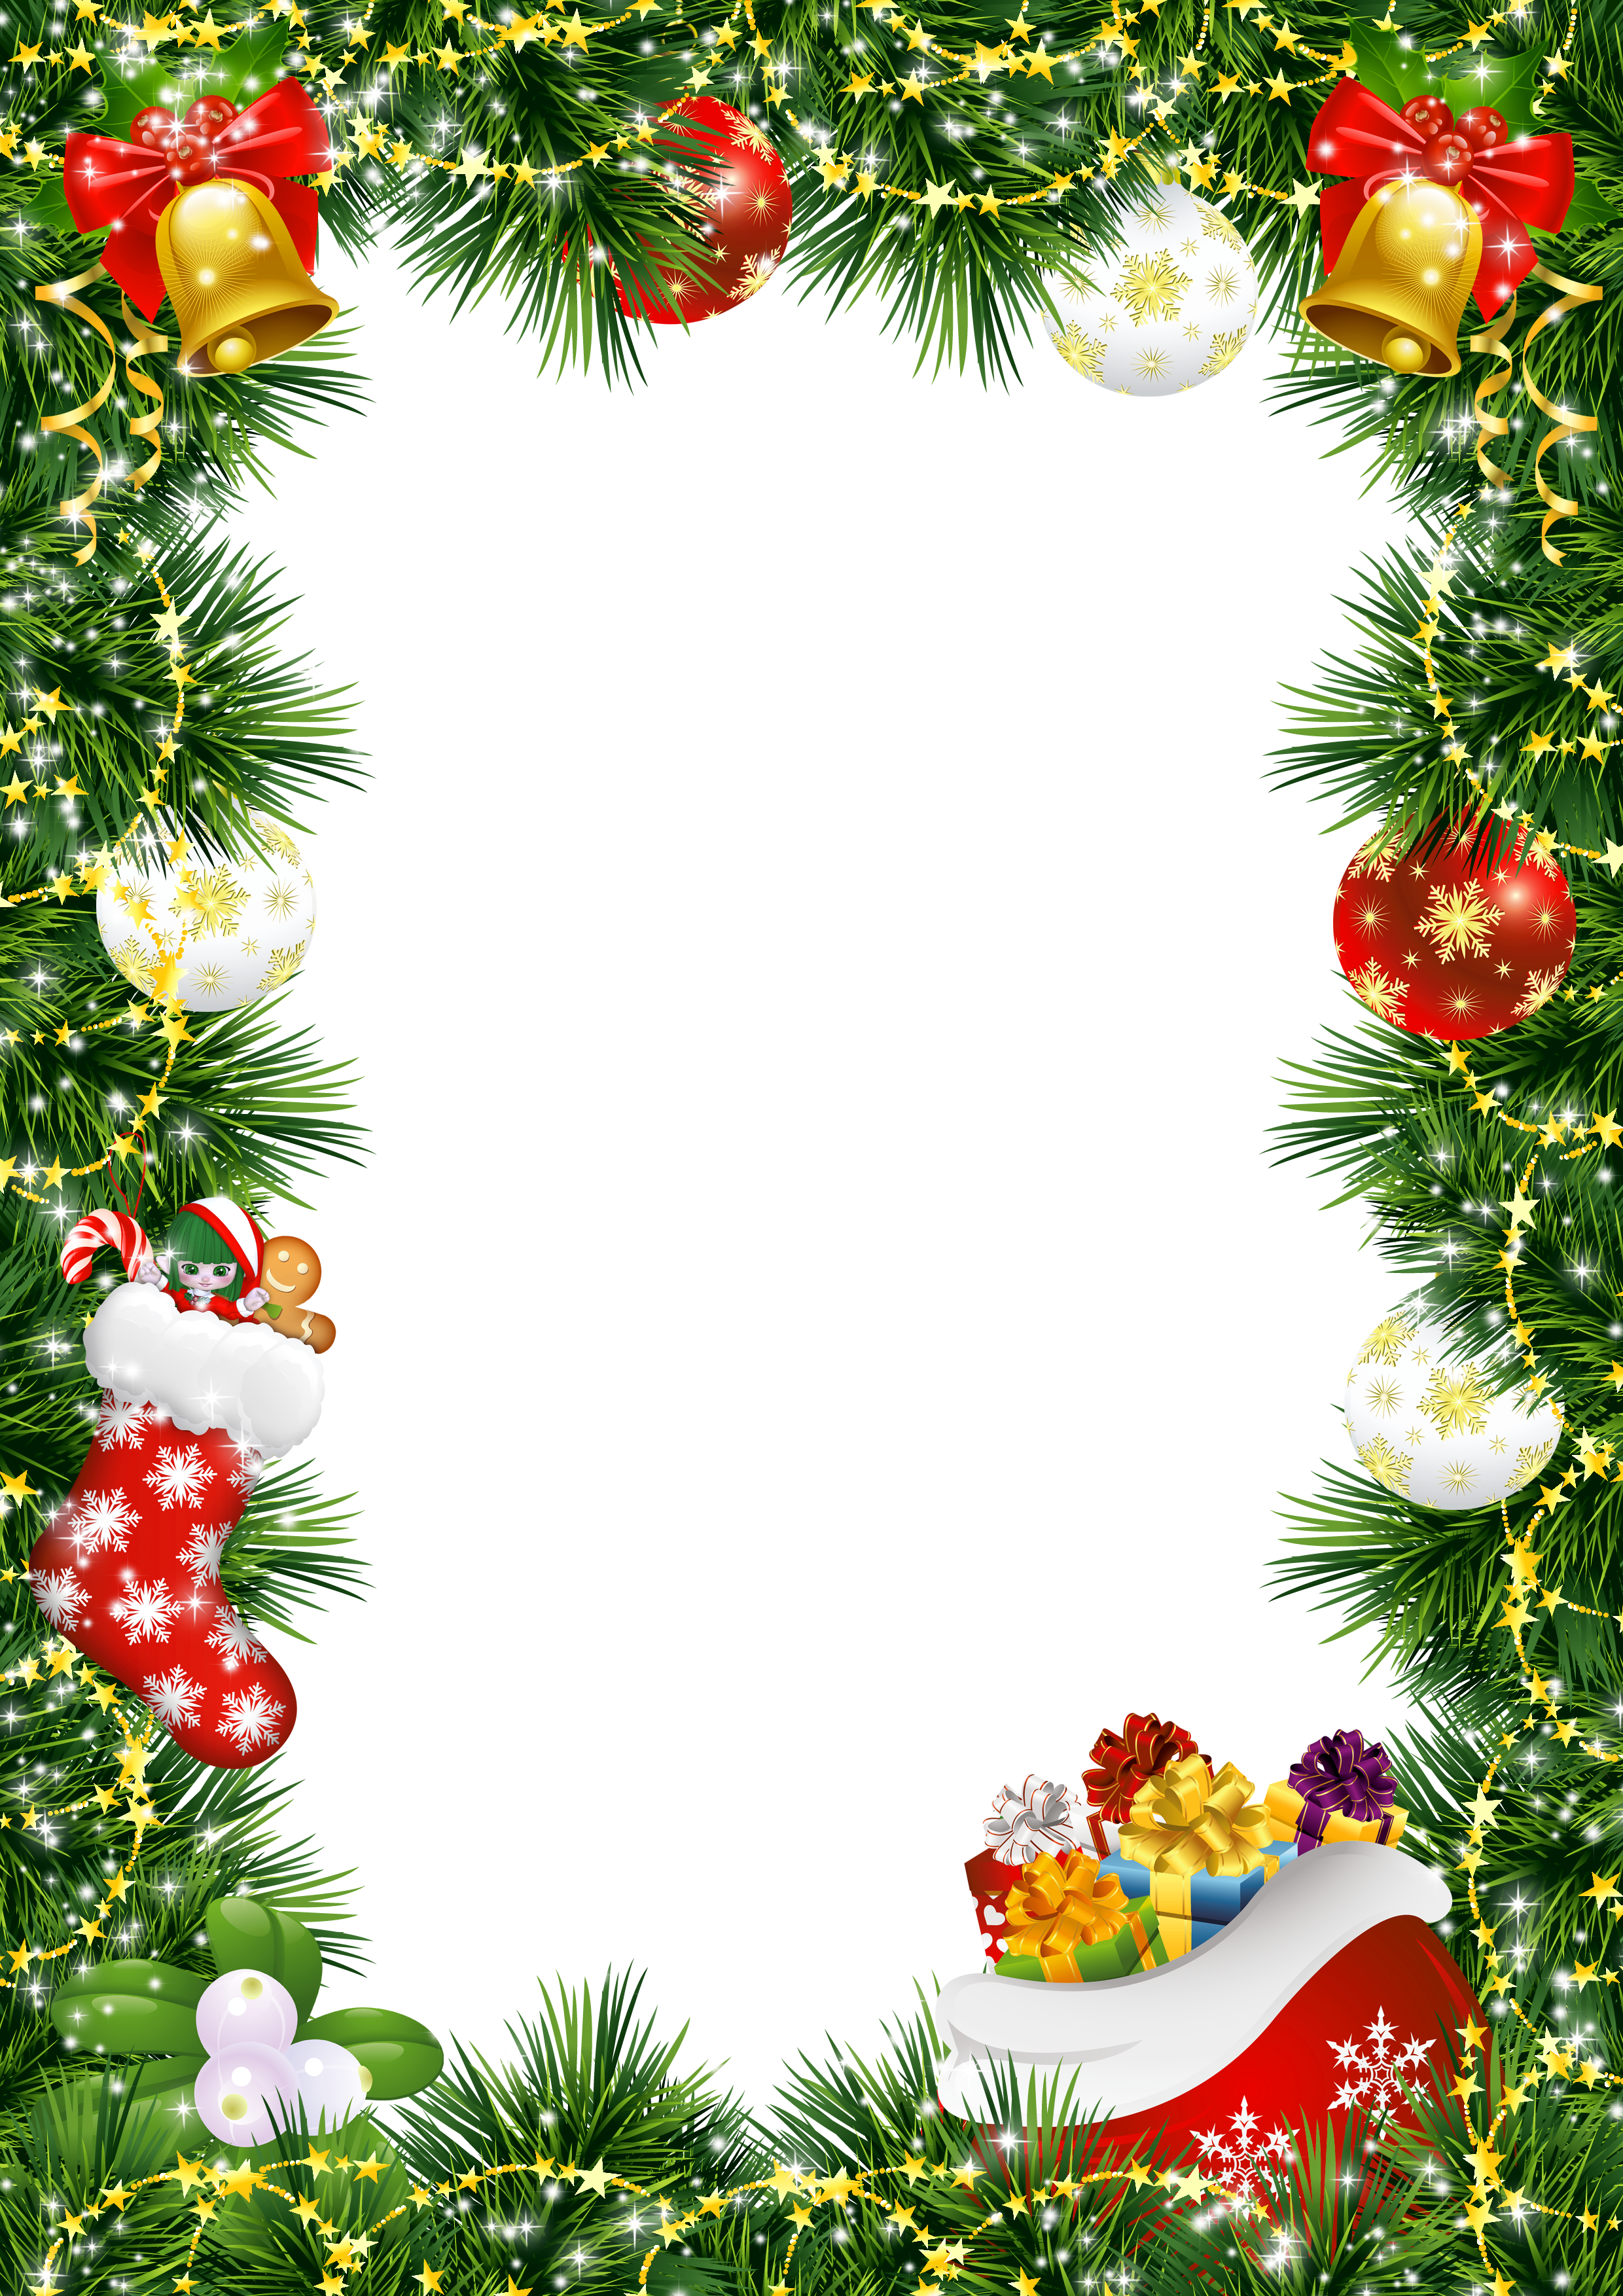 Photo with ornaments gallery. Christmas card frame png